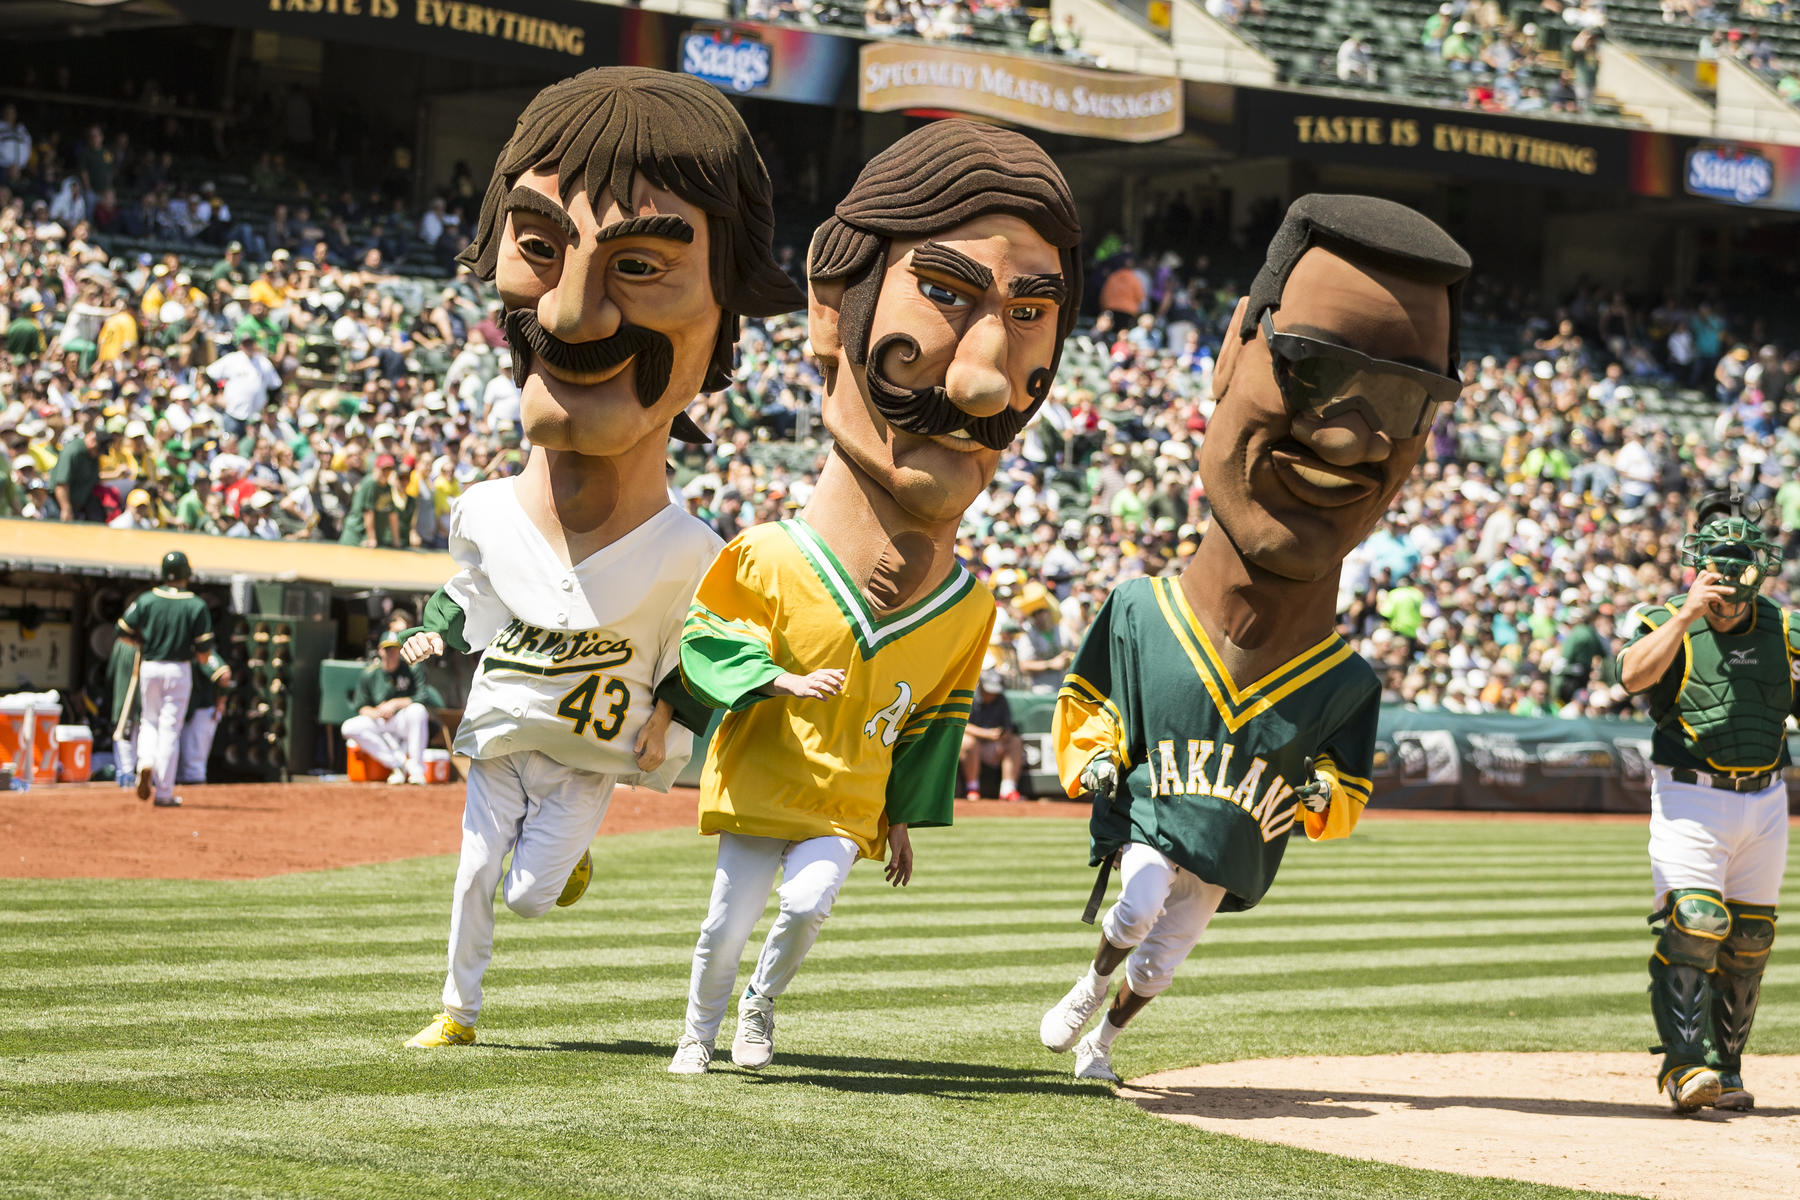 Mascots of Rickey Henderson, Dennis Eckersley and Rollie Fingers run in the Oakland Athletics' Hall of Fame race during the game between the Athletics and the Boston Red Sox at O.co Coliseum on May 13, 2015, in Oakland, Calif. (Jean Fruth / National Baseball Hall of Fame)